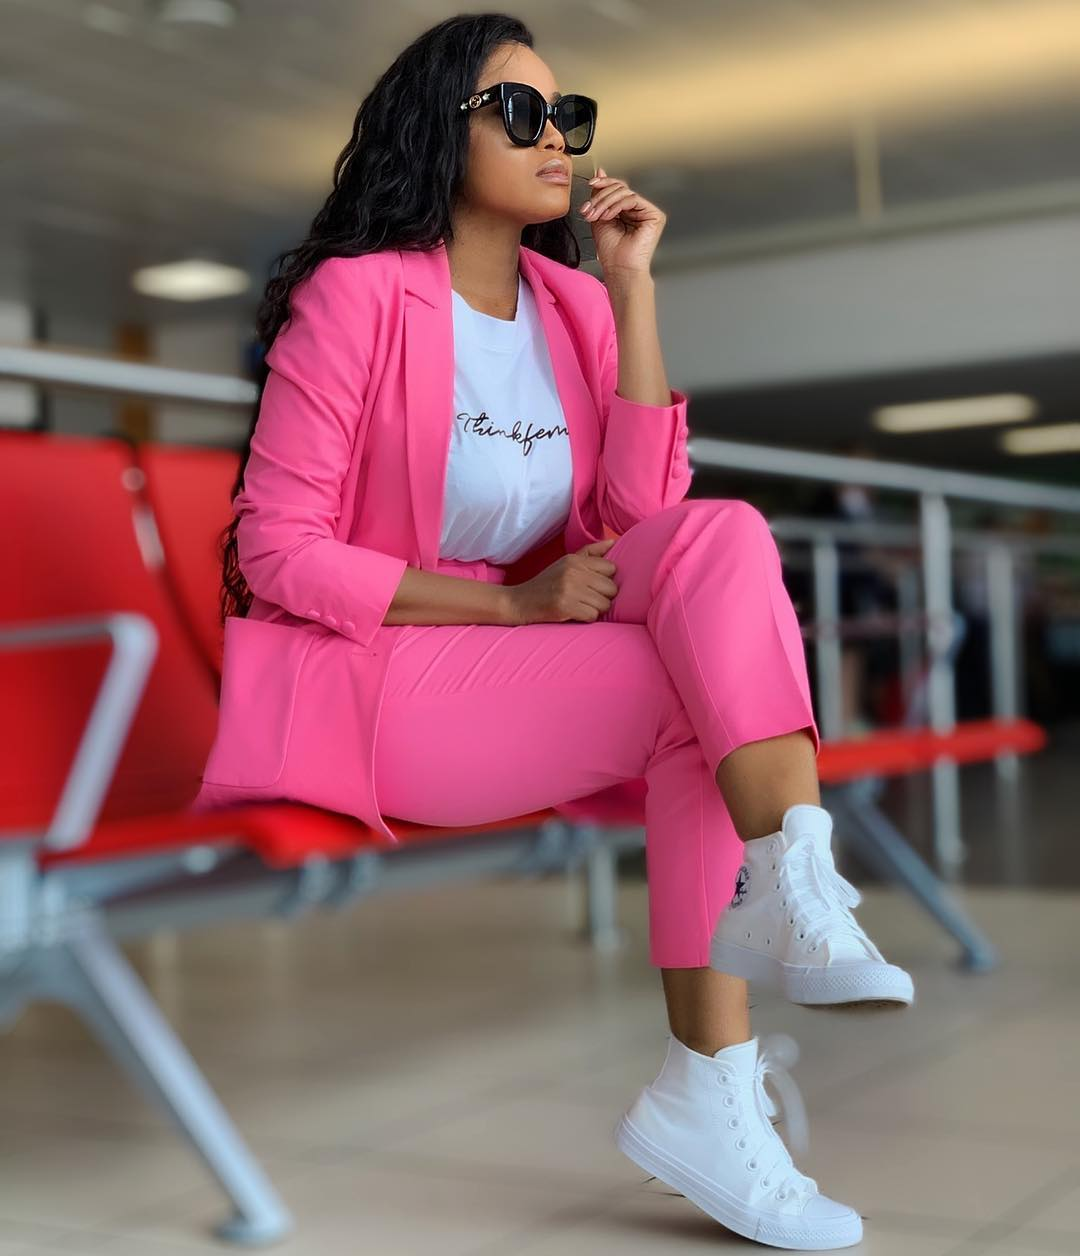 lerato-in-pink-suit